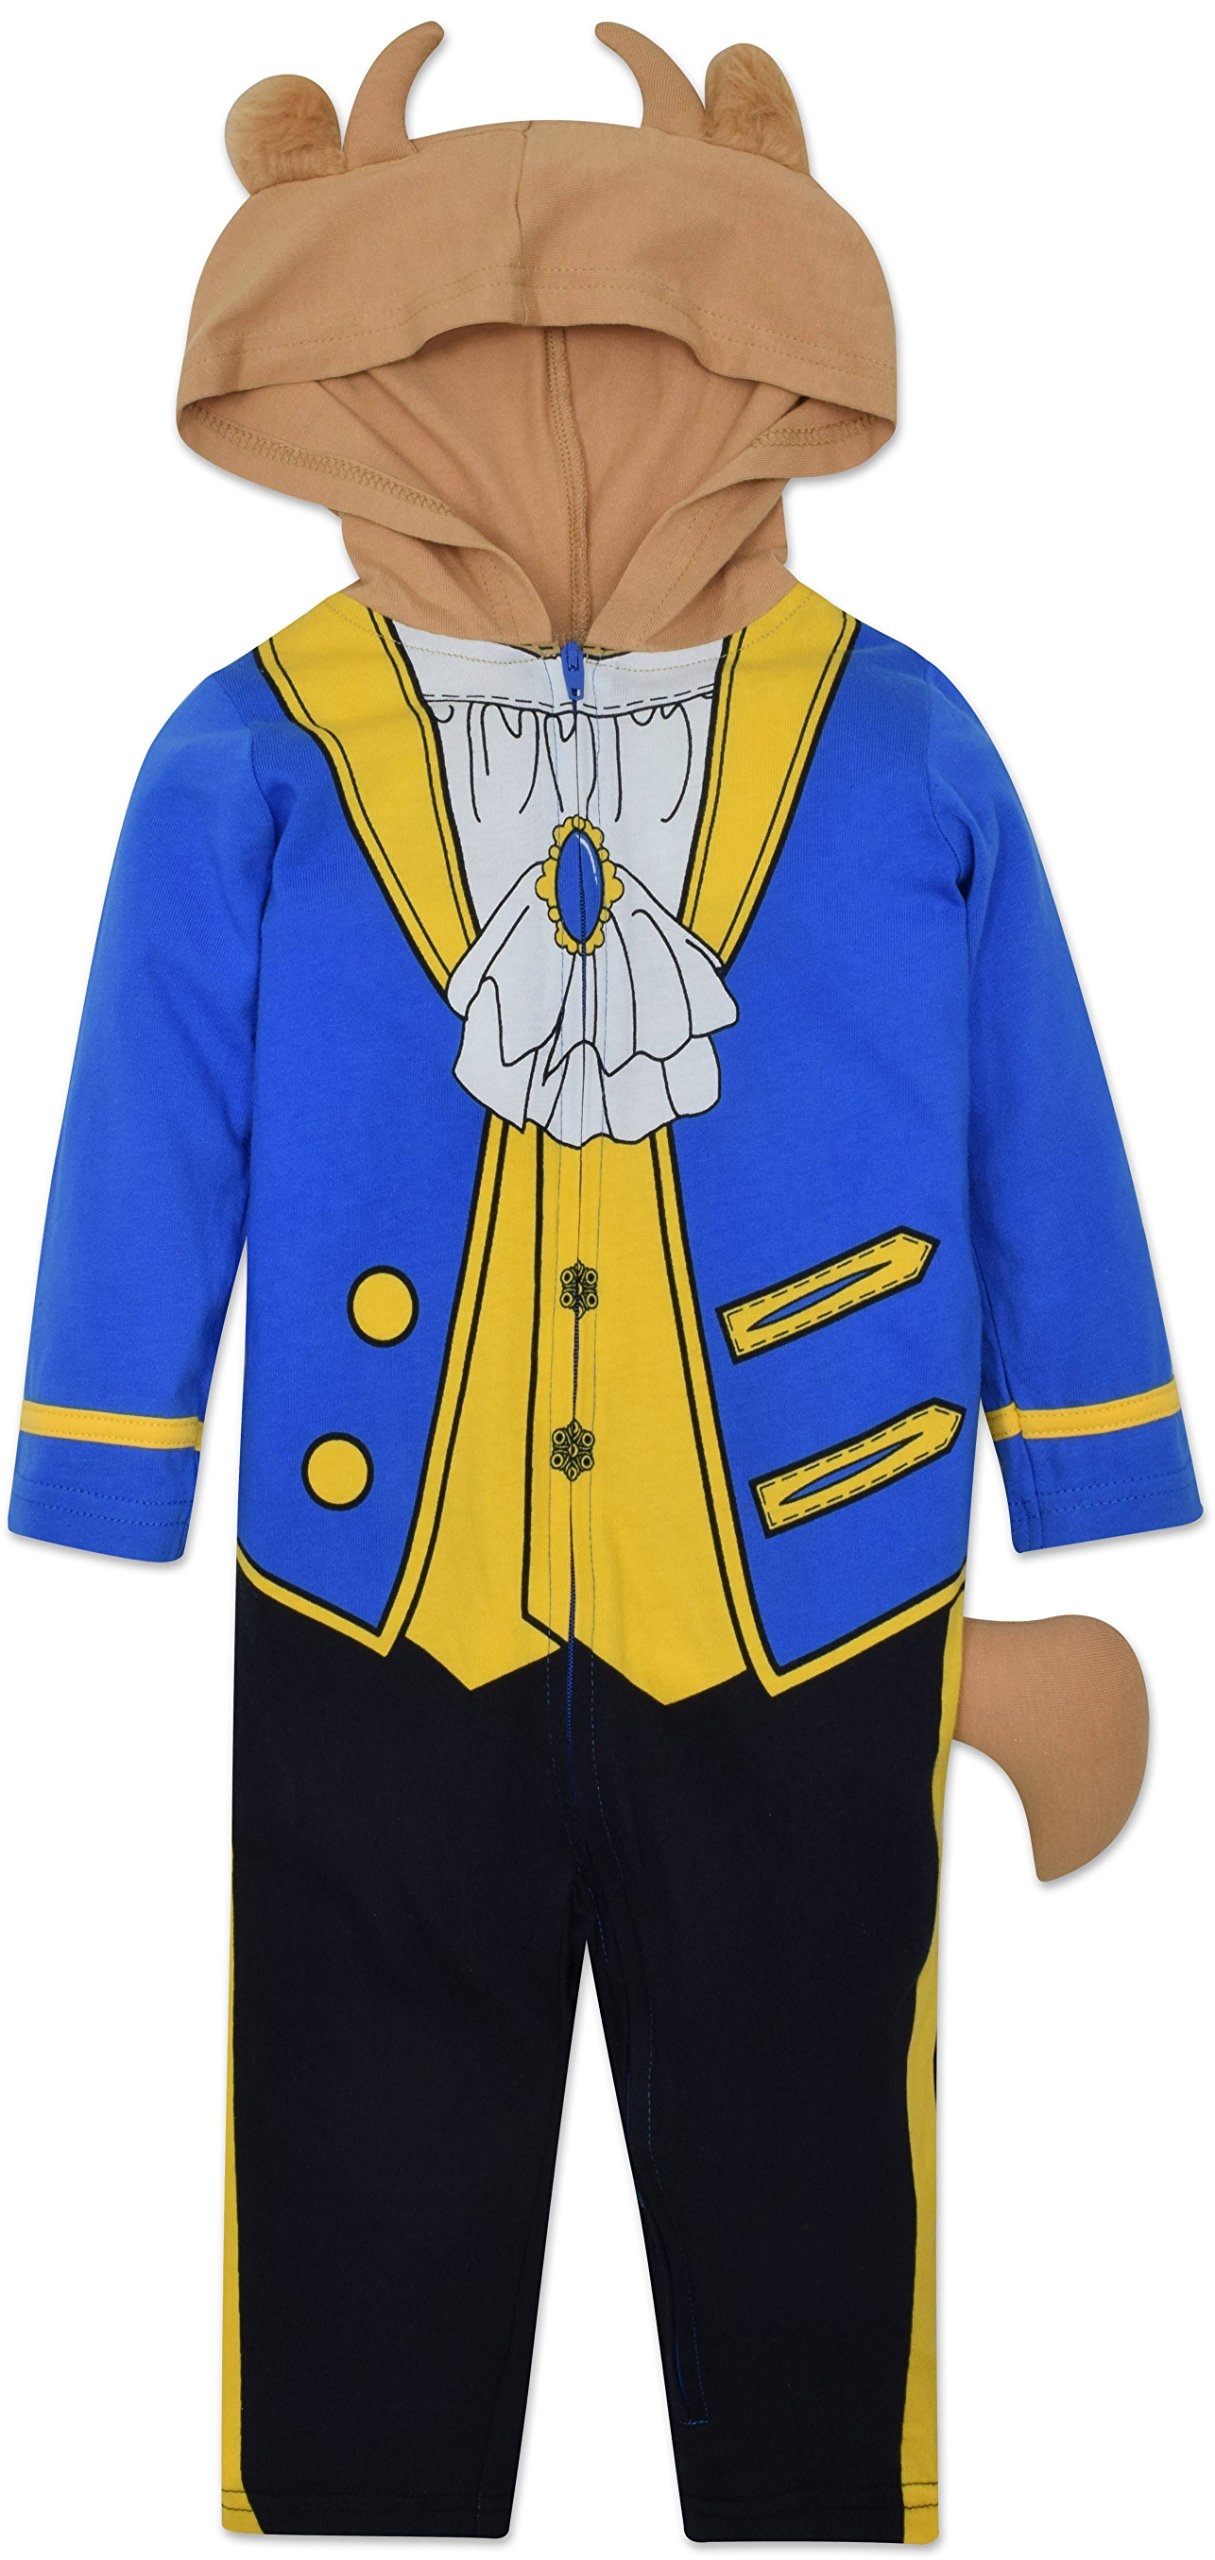 Disney the Beast Prince Baby Boys' Costume Coverall with Hood, Blue, 18-24 Months